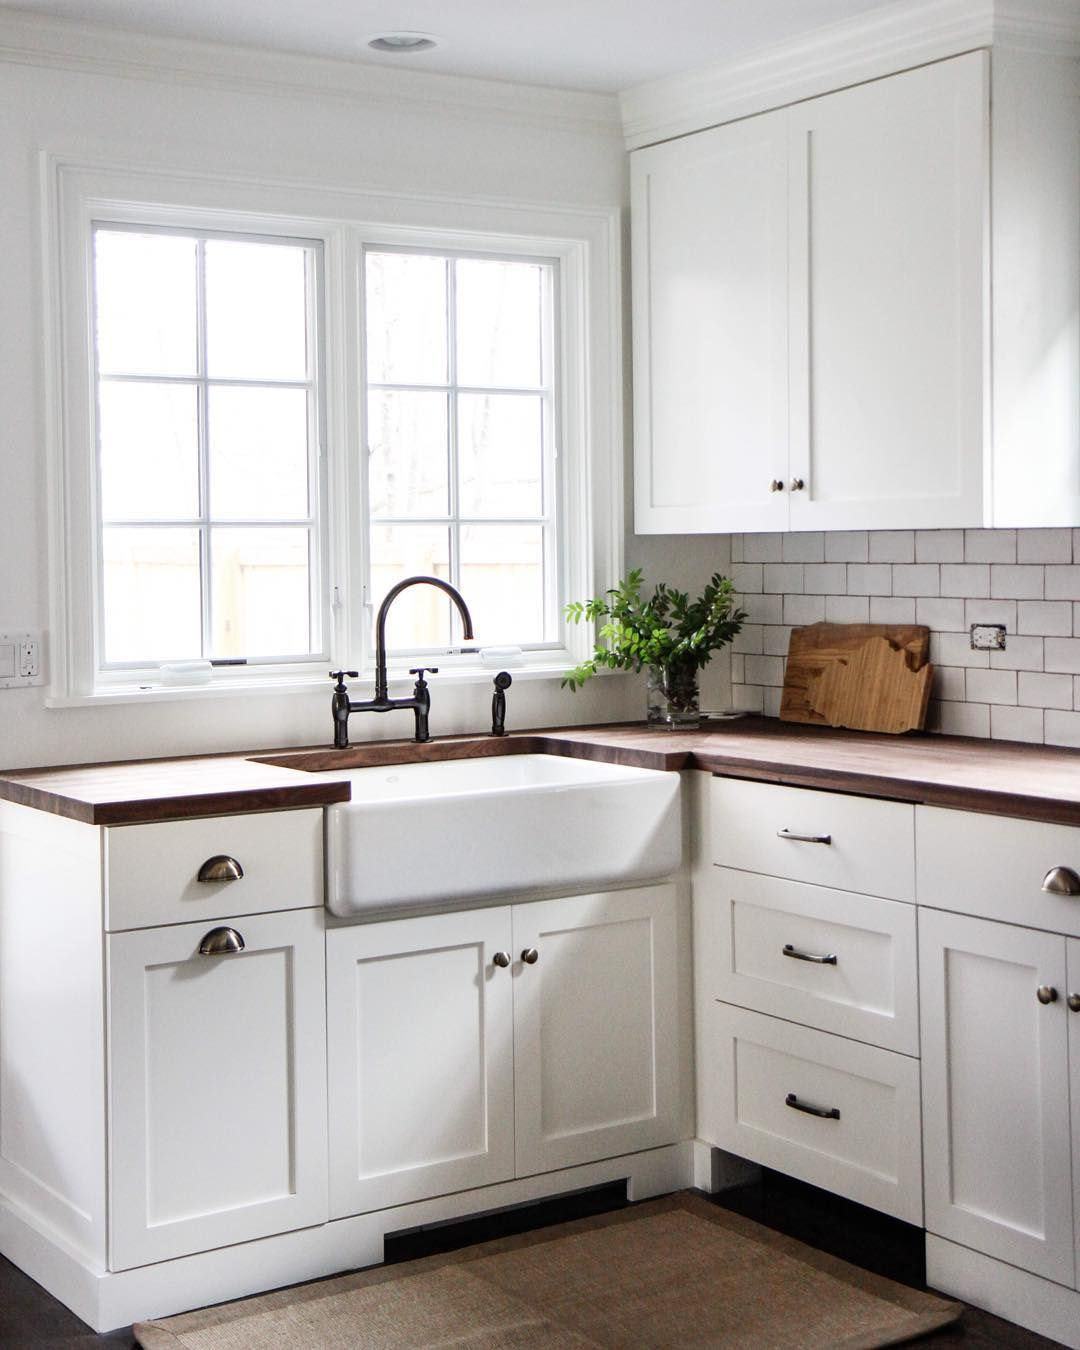 absolute best white kitchen cabinet ideas as well as designs white rh pinterest com